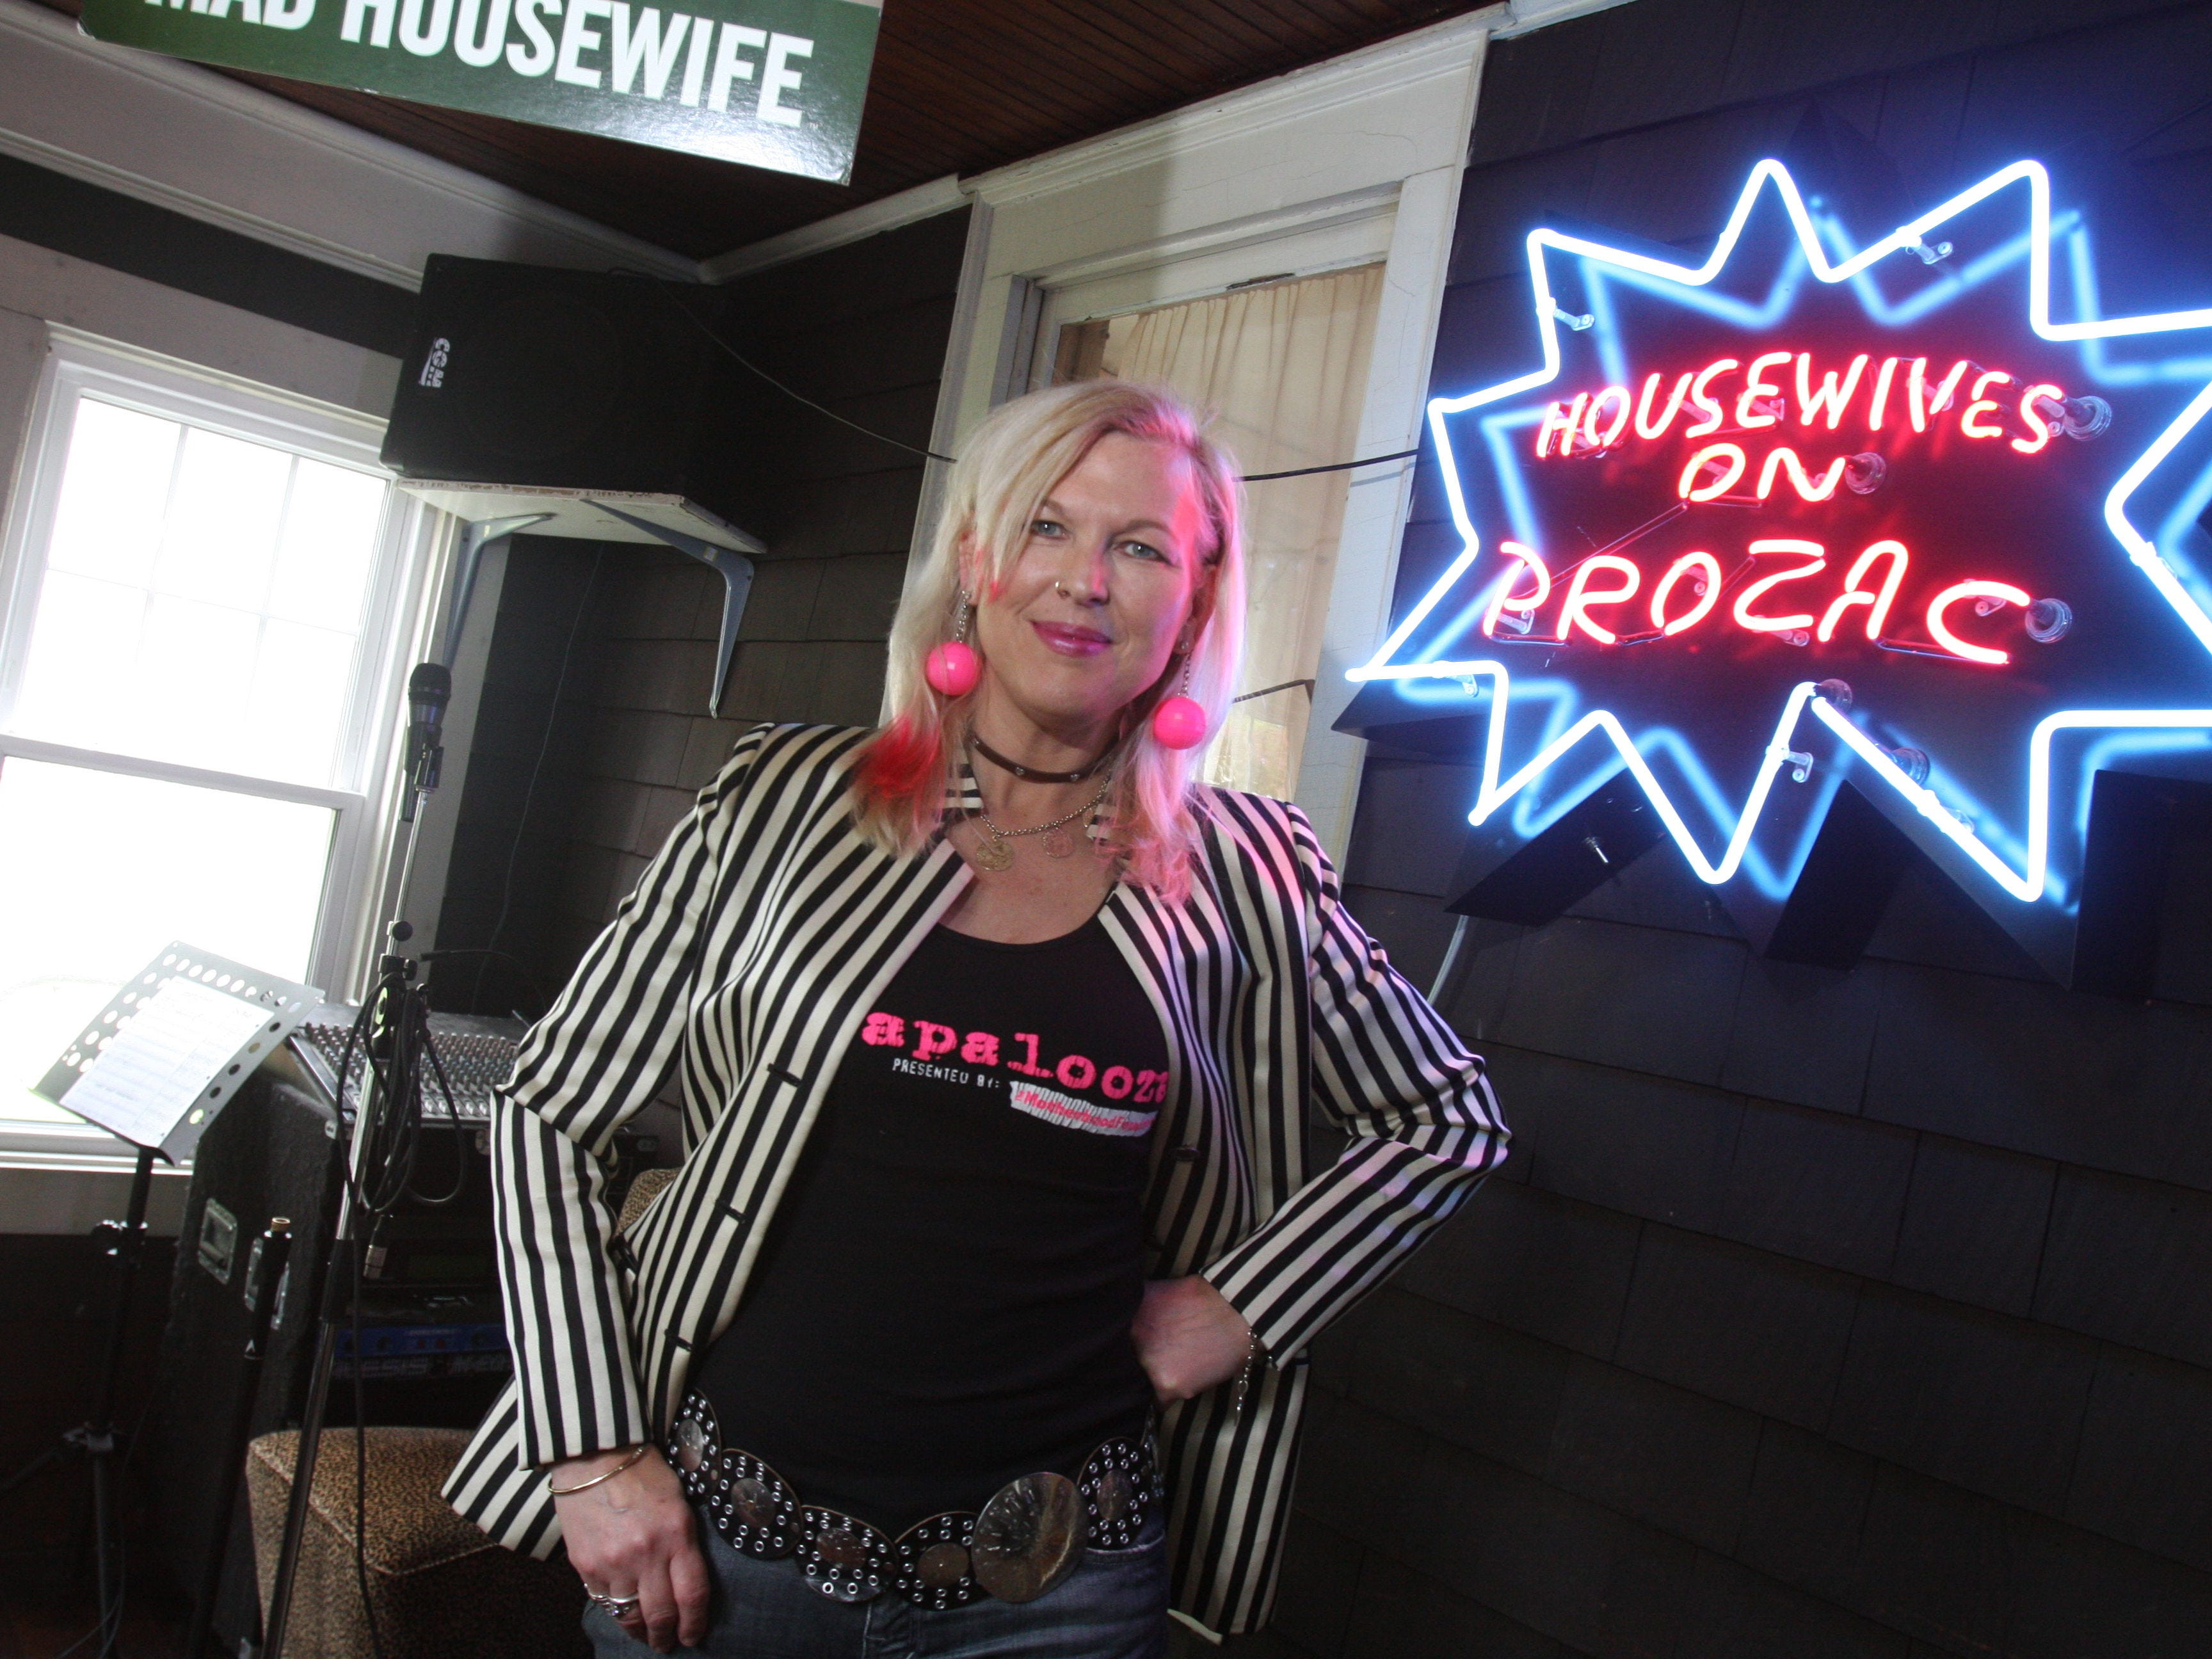 Ali Marpet's mother Joy Rose, of the band Housewives on Prozac, is also the founder of Mamapalooza, an event that celebrates the power of mothers.